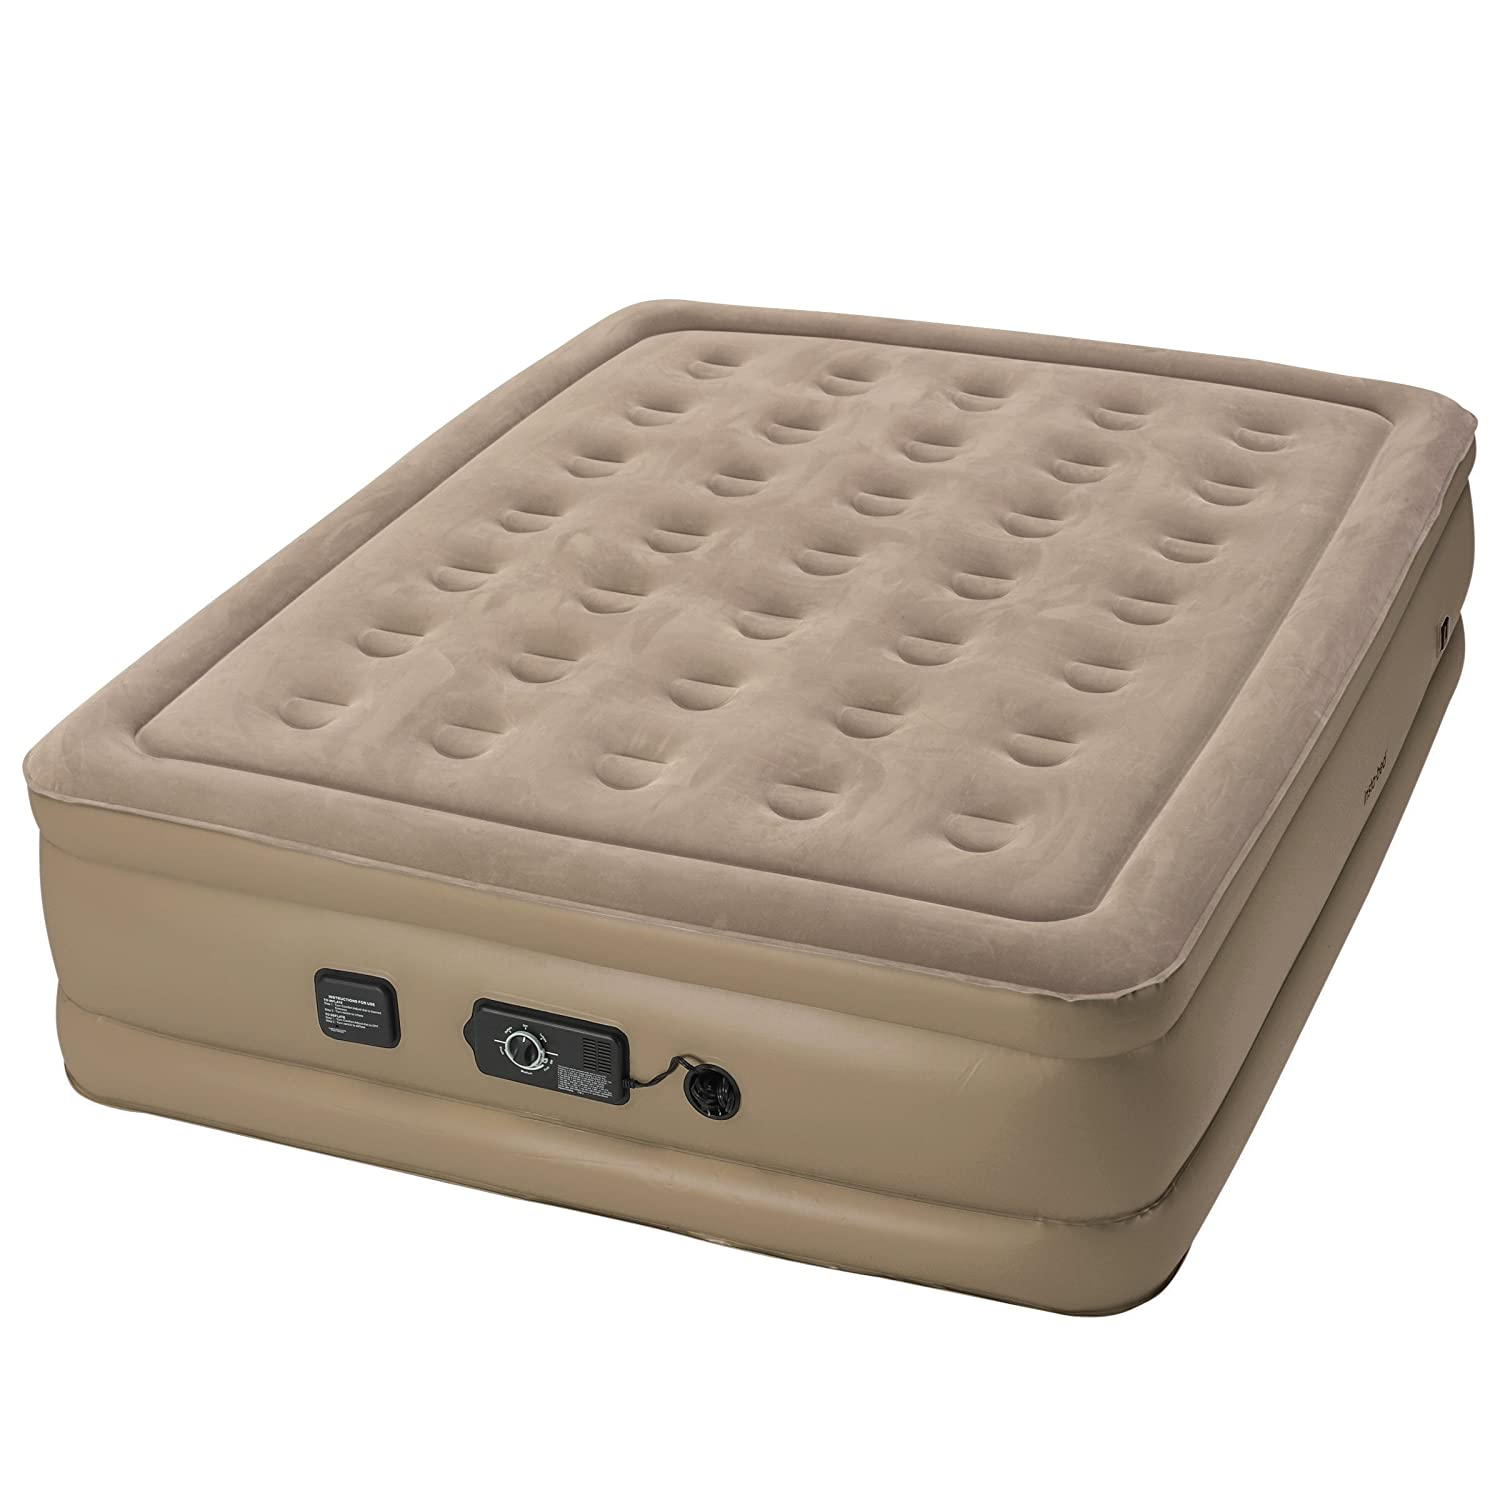 Insta-Bed Raised Air Mattress with Never Flat Pump review